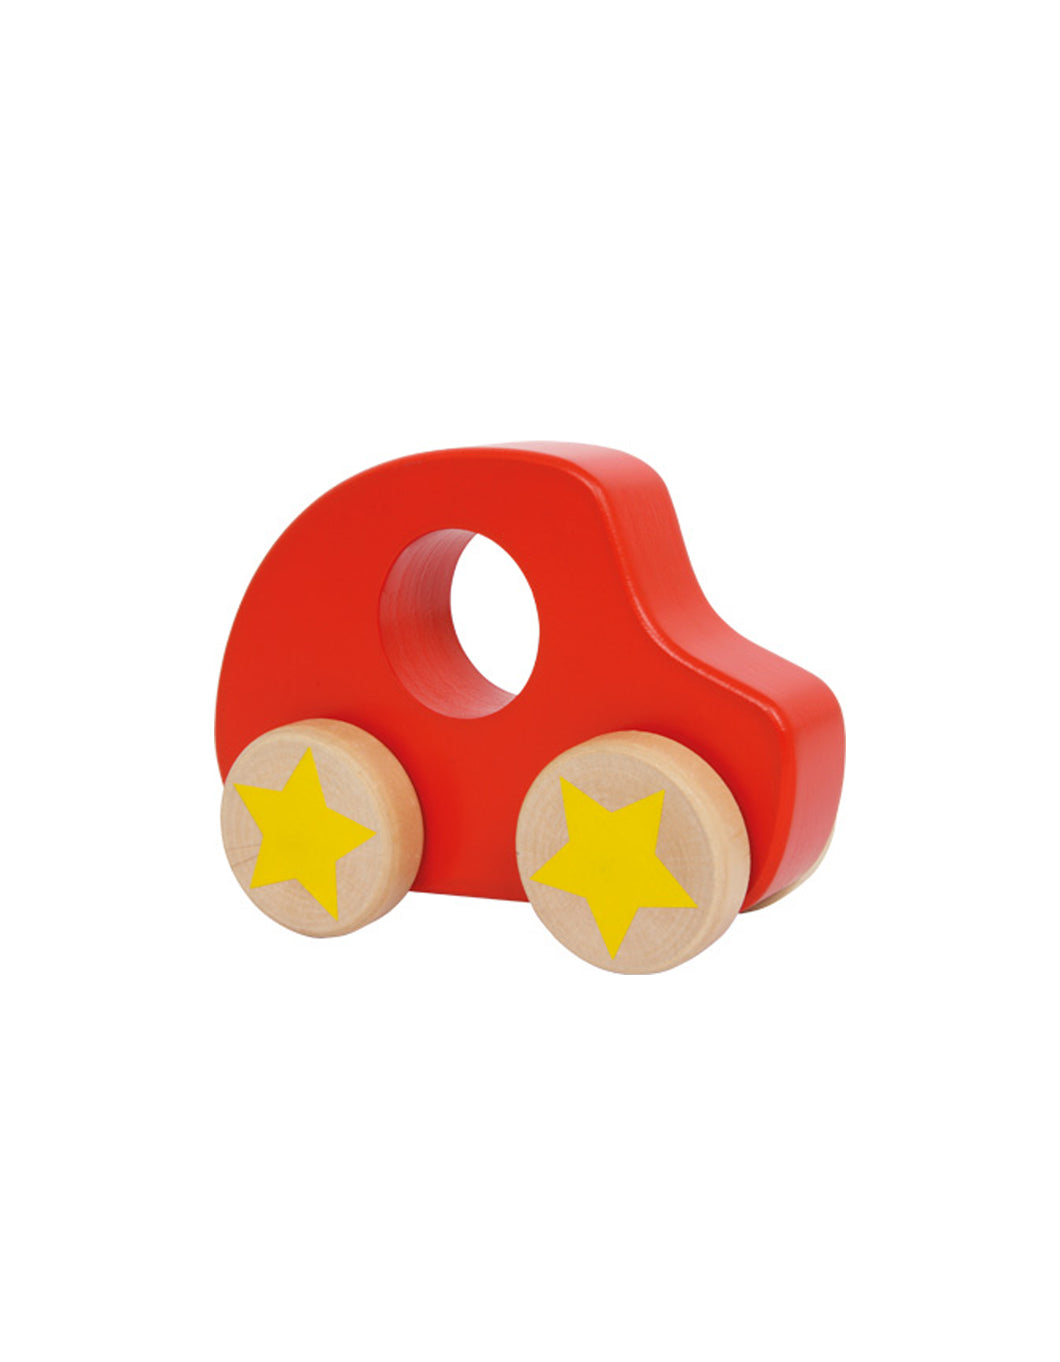 Wooden Red Car Toy